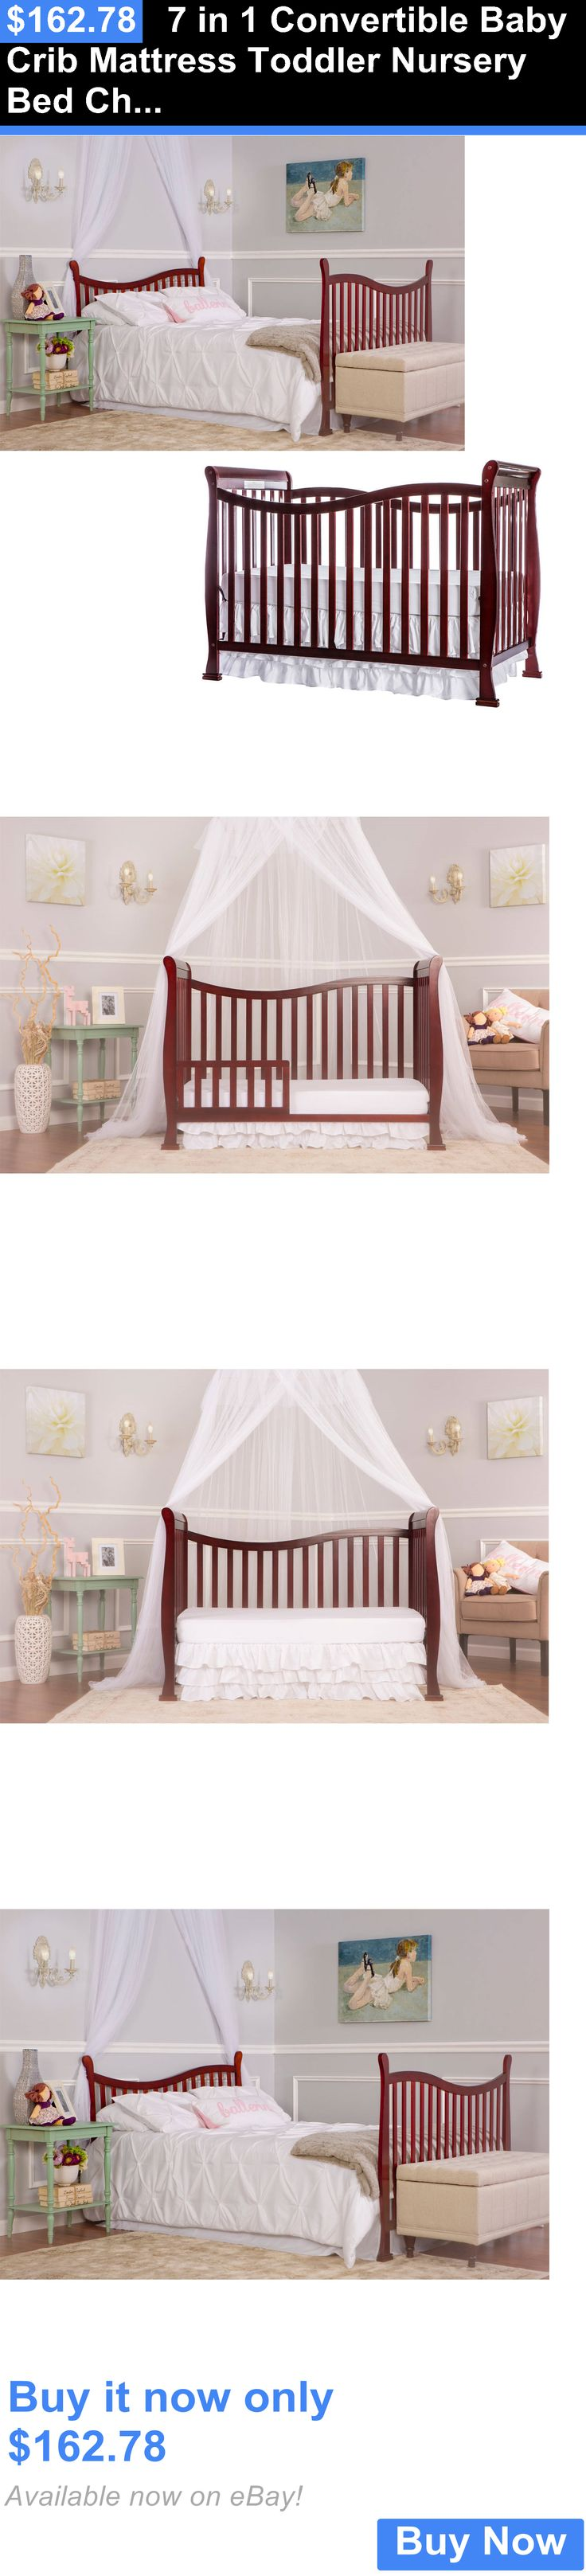 Used crib for sale ebay - Baby Nursery 7 In 1 Convertible Baby Crib Mattress Toddler Nursery Bed Changer Side Buy